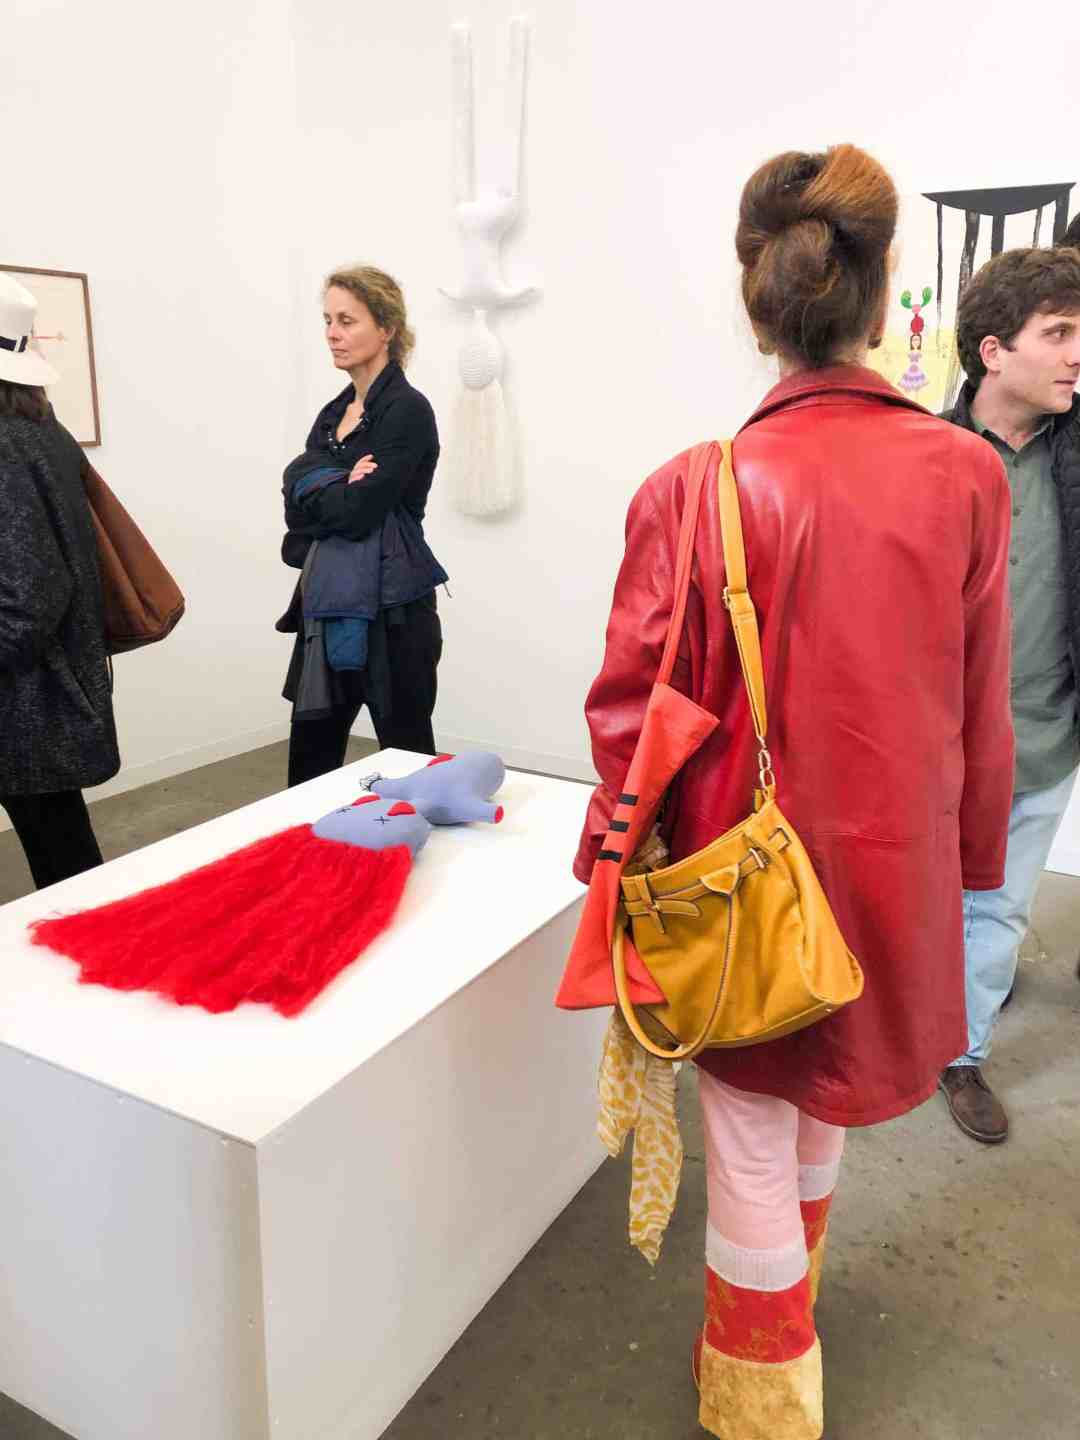 Arcadia Missa and Sandy Brown, solo show by Penny Goring